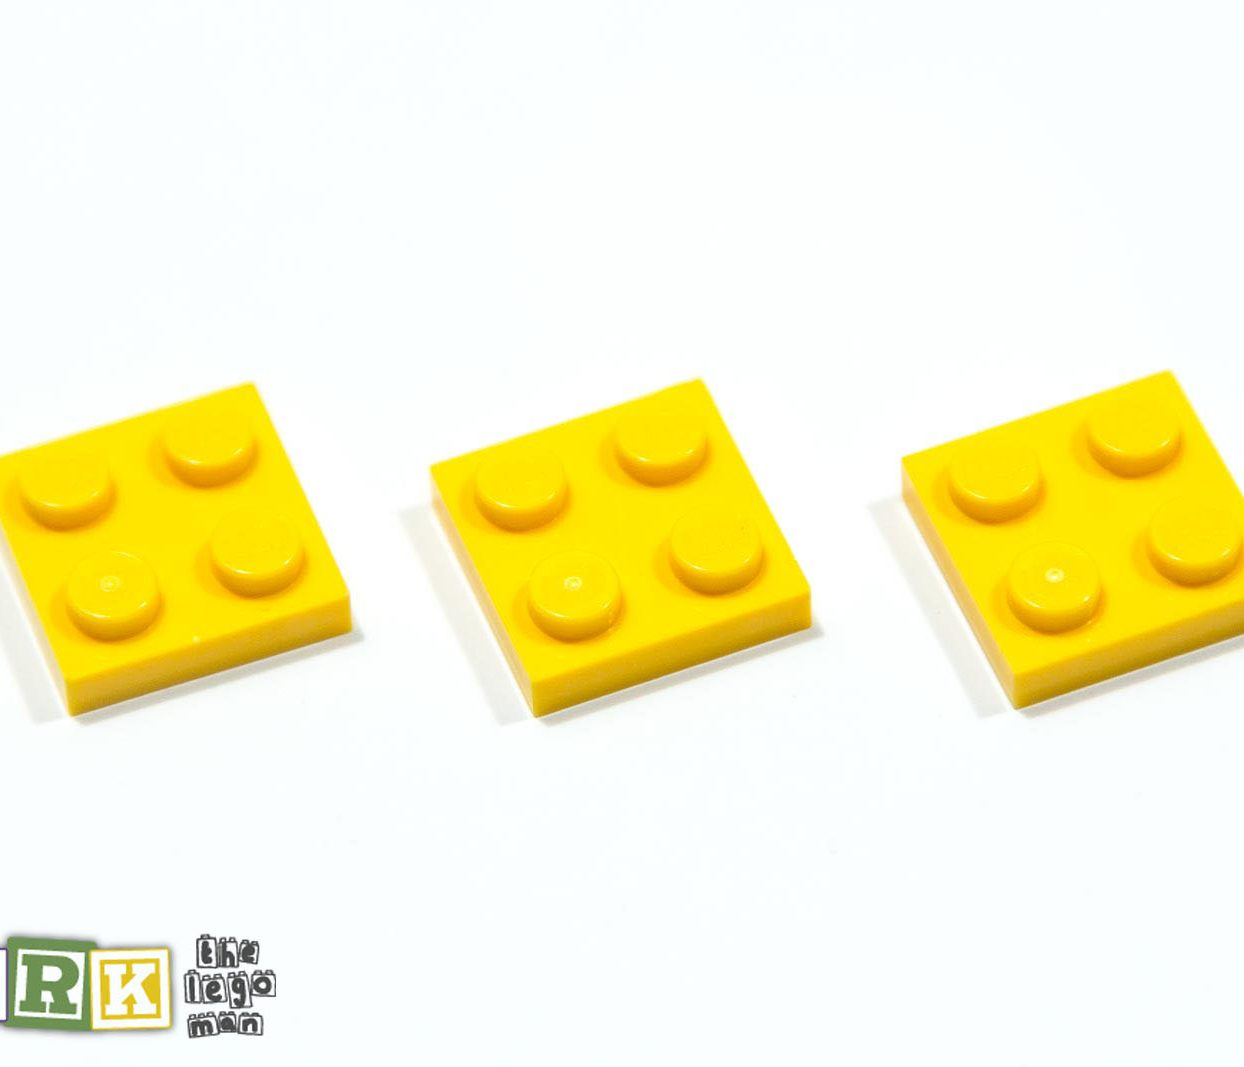 NEW Lego 302224 3022 3x Bright Yellow 2x2 Plate